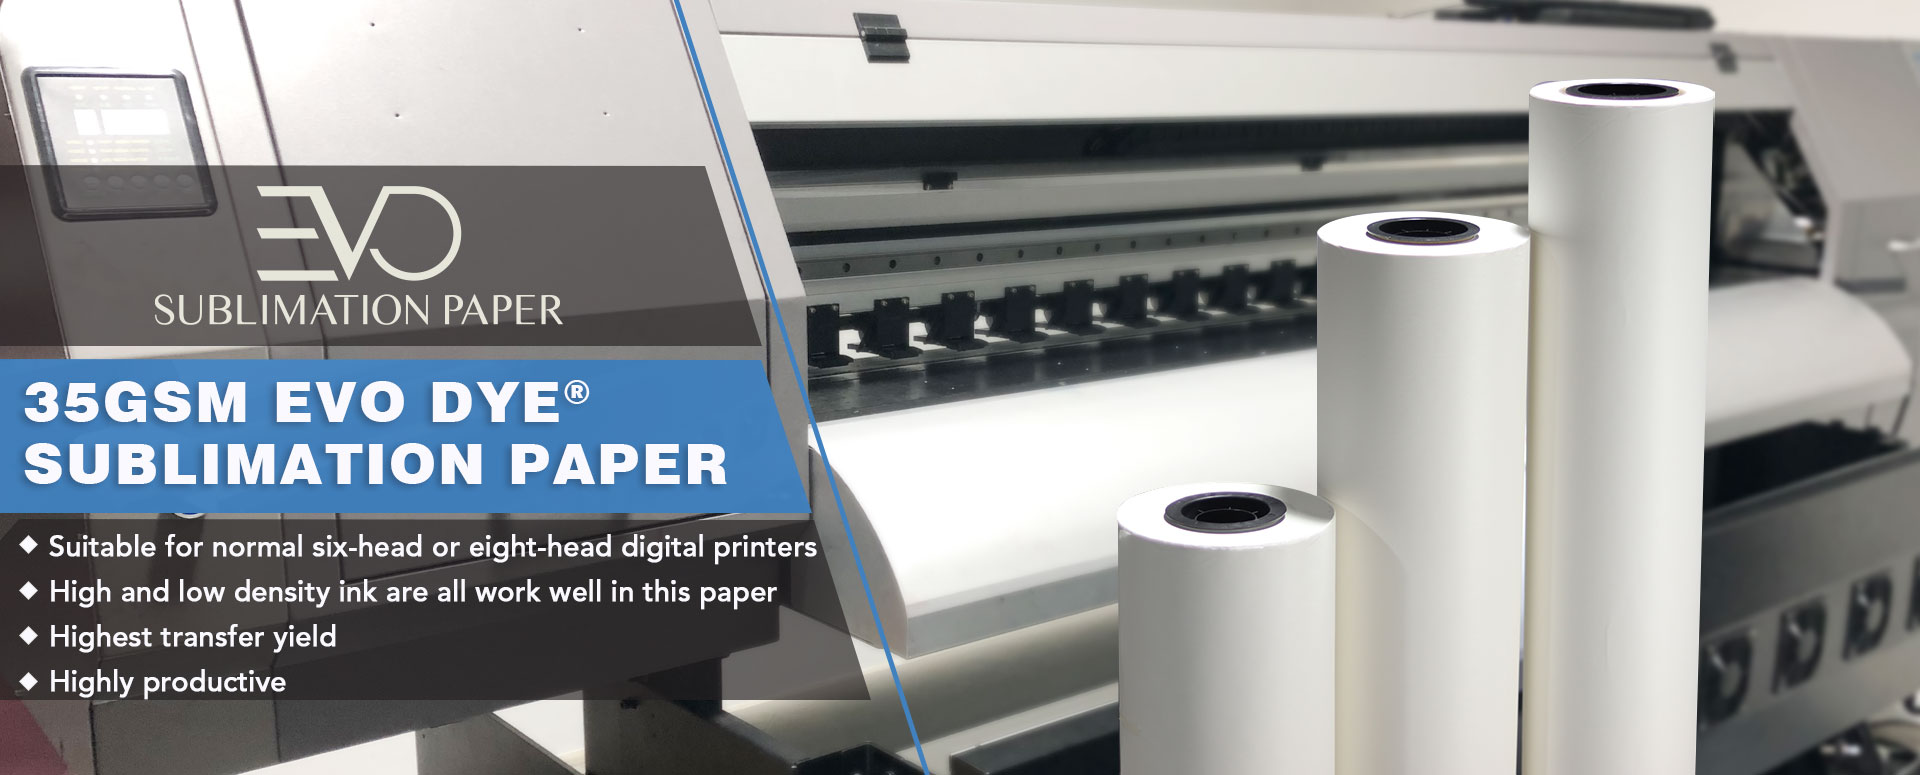 35gsm EVO Dye® Sublimation Paper